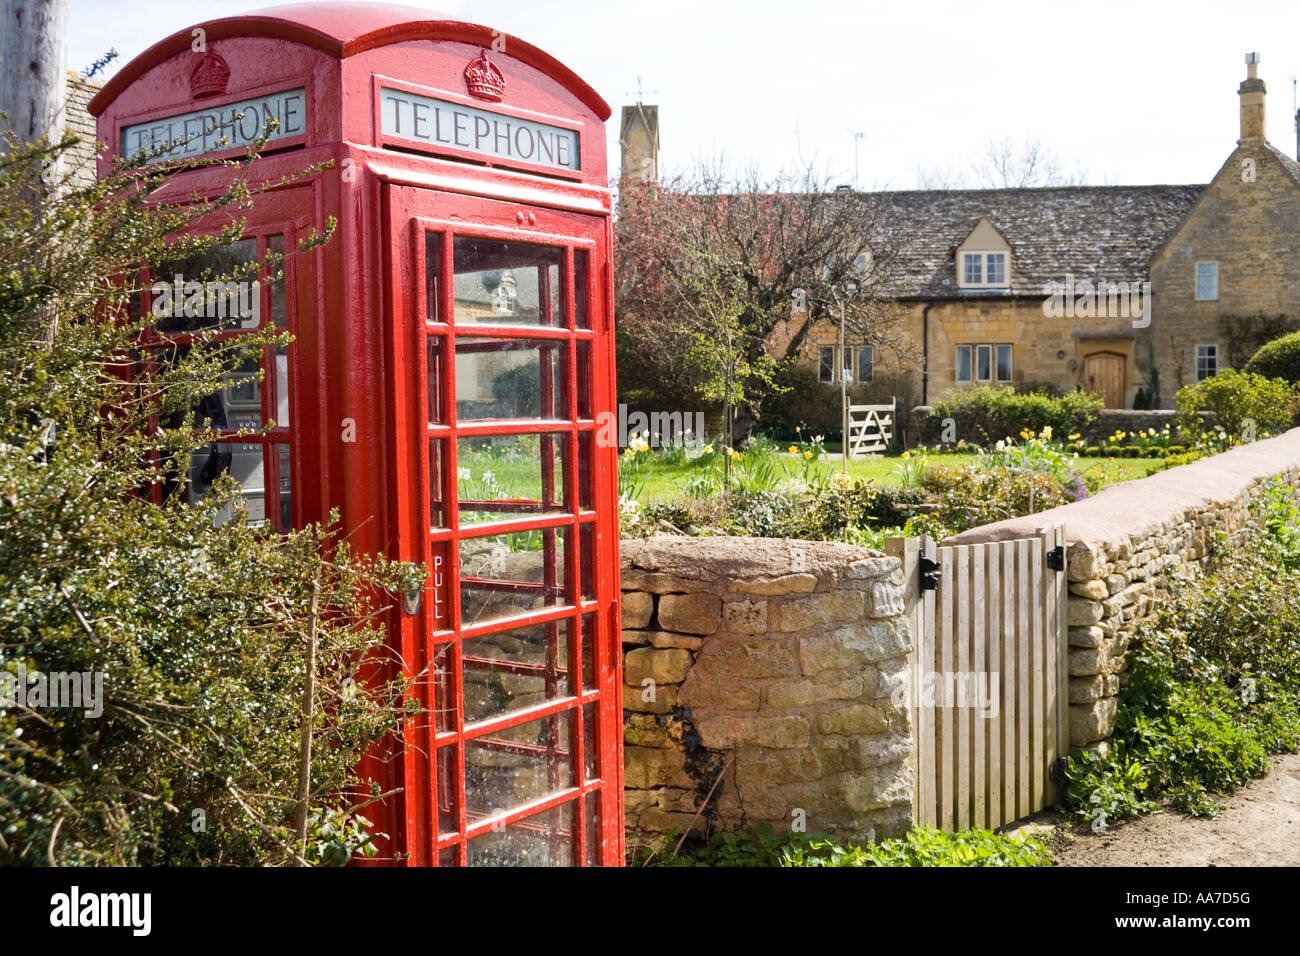 Rural country telephone kiosk in the Cotswold village of Laverton Gloucestershire - Stock Image